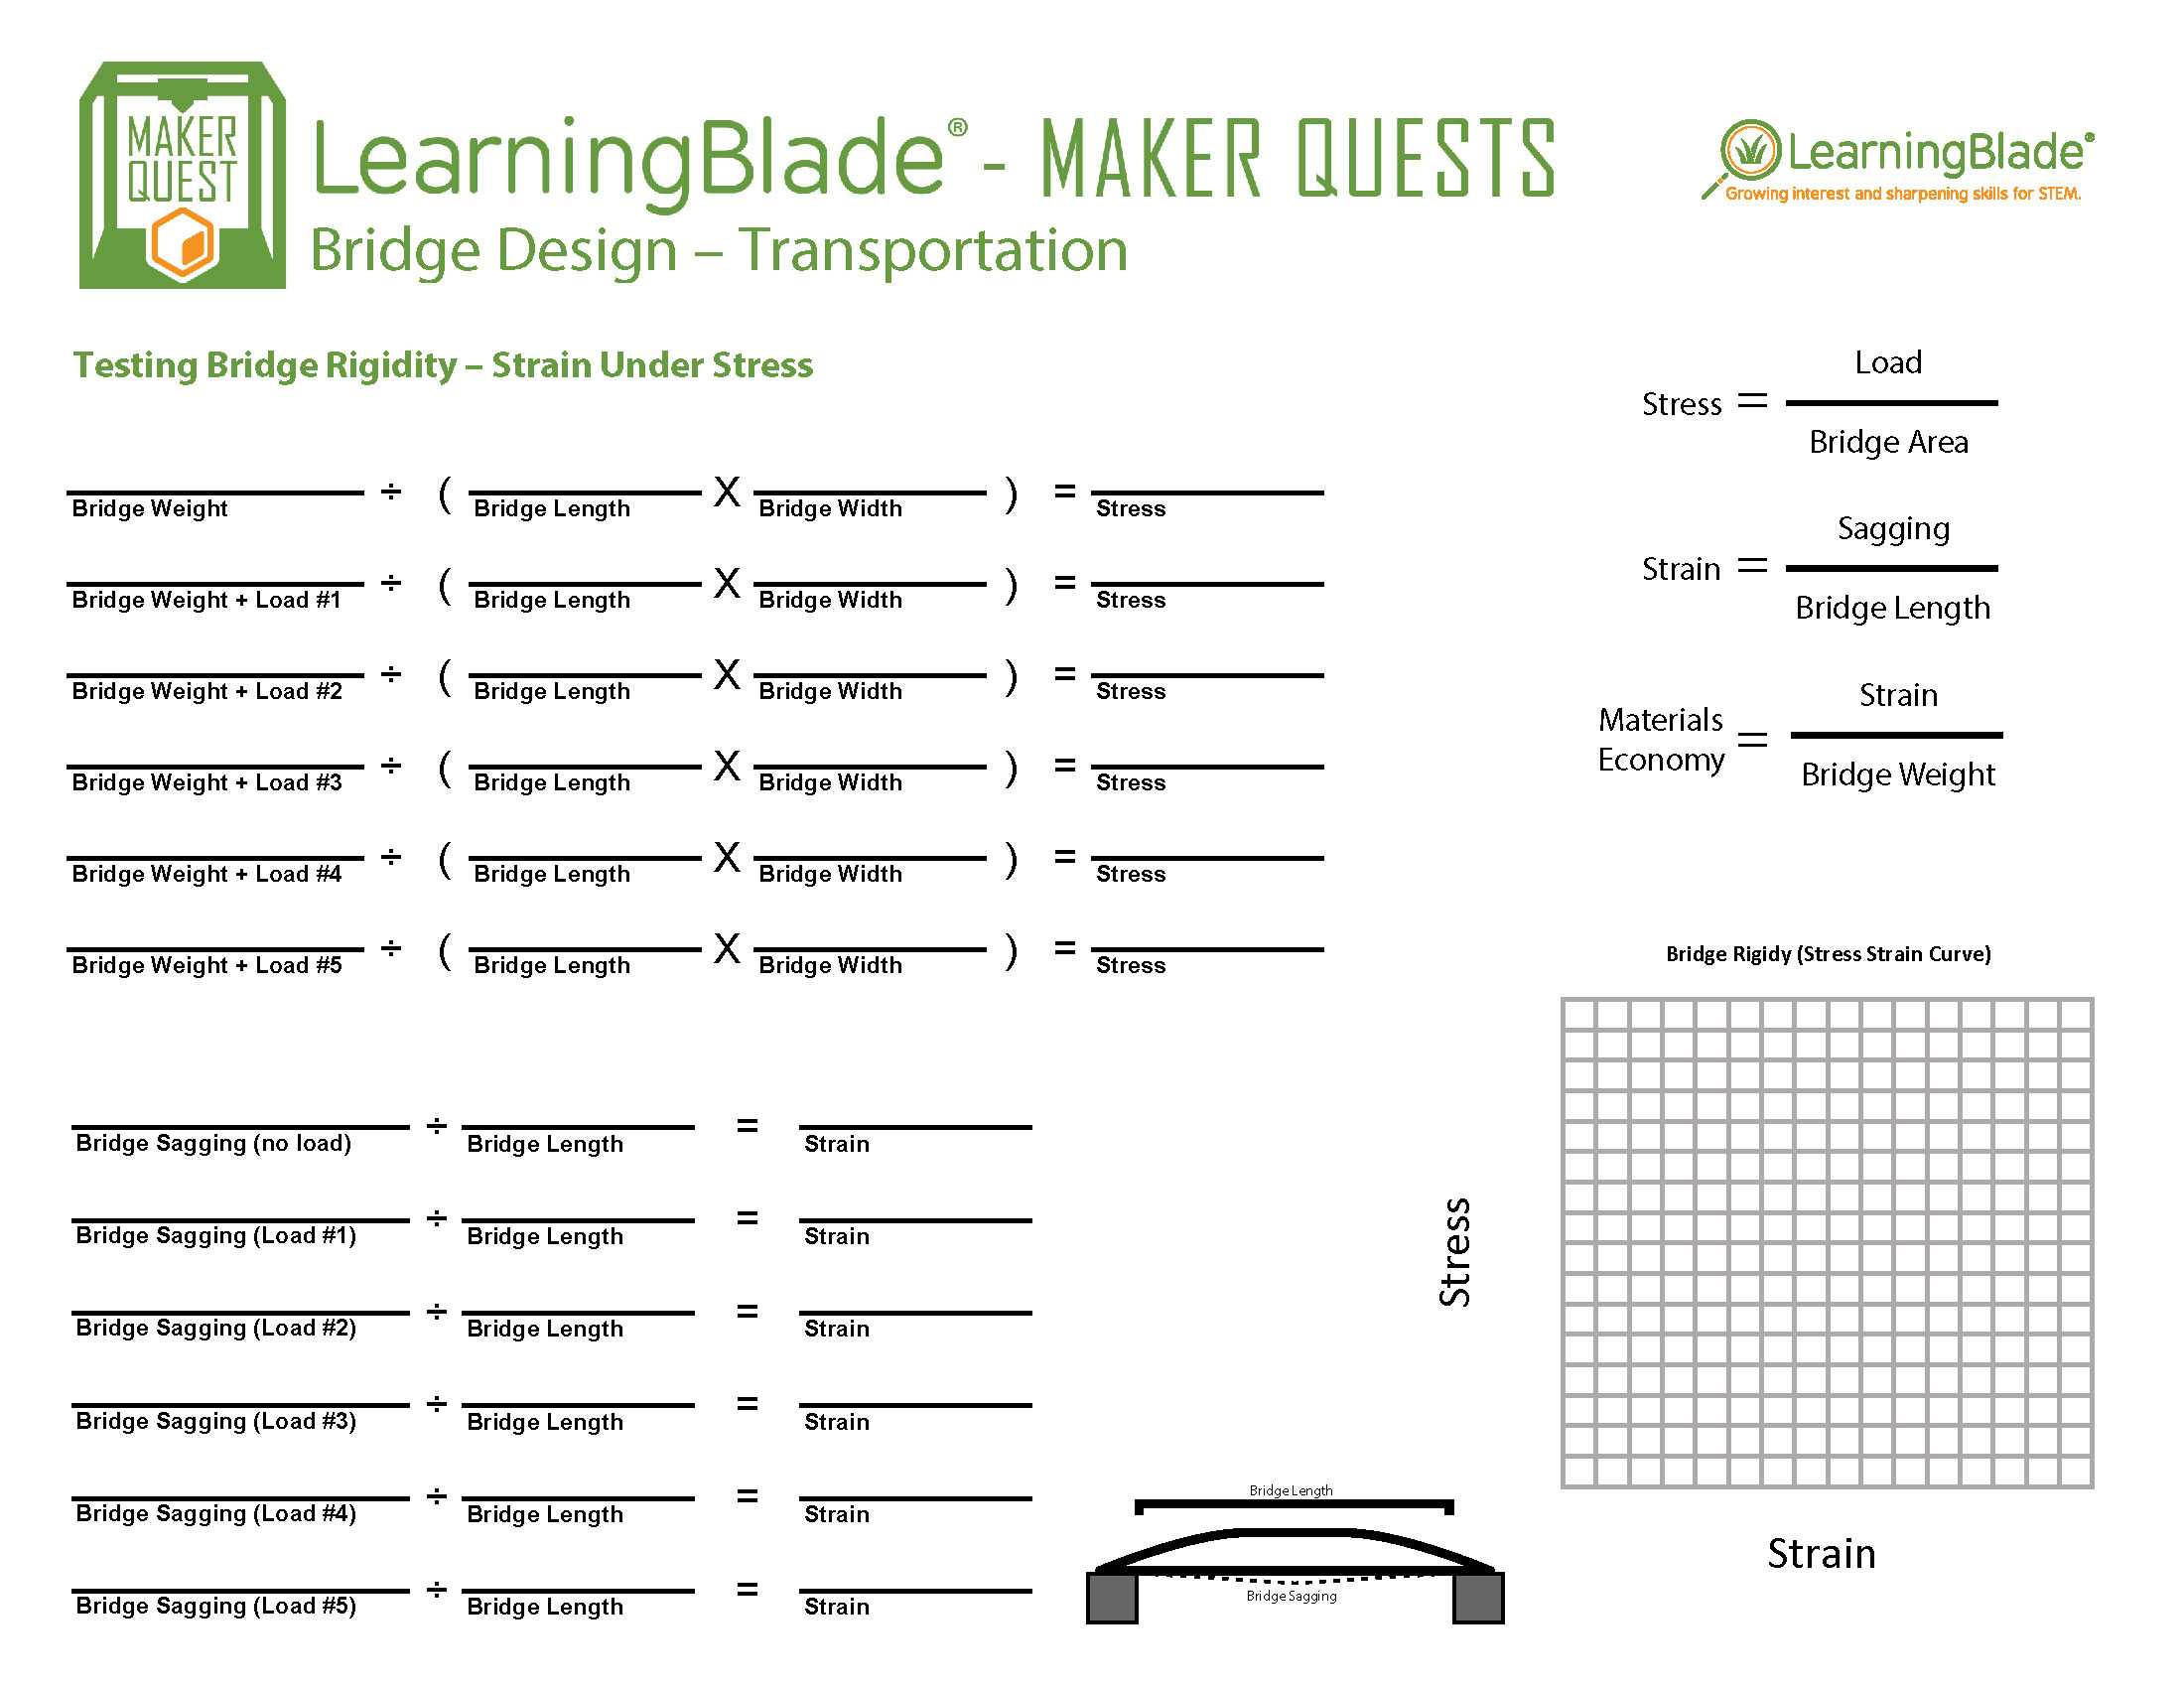 Tape Measure Worksheet Along with Learning Blade 3d Maker Quest Bridge Design by